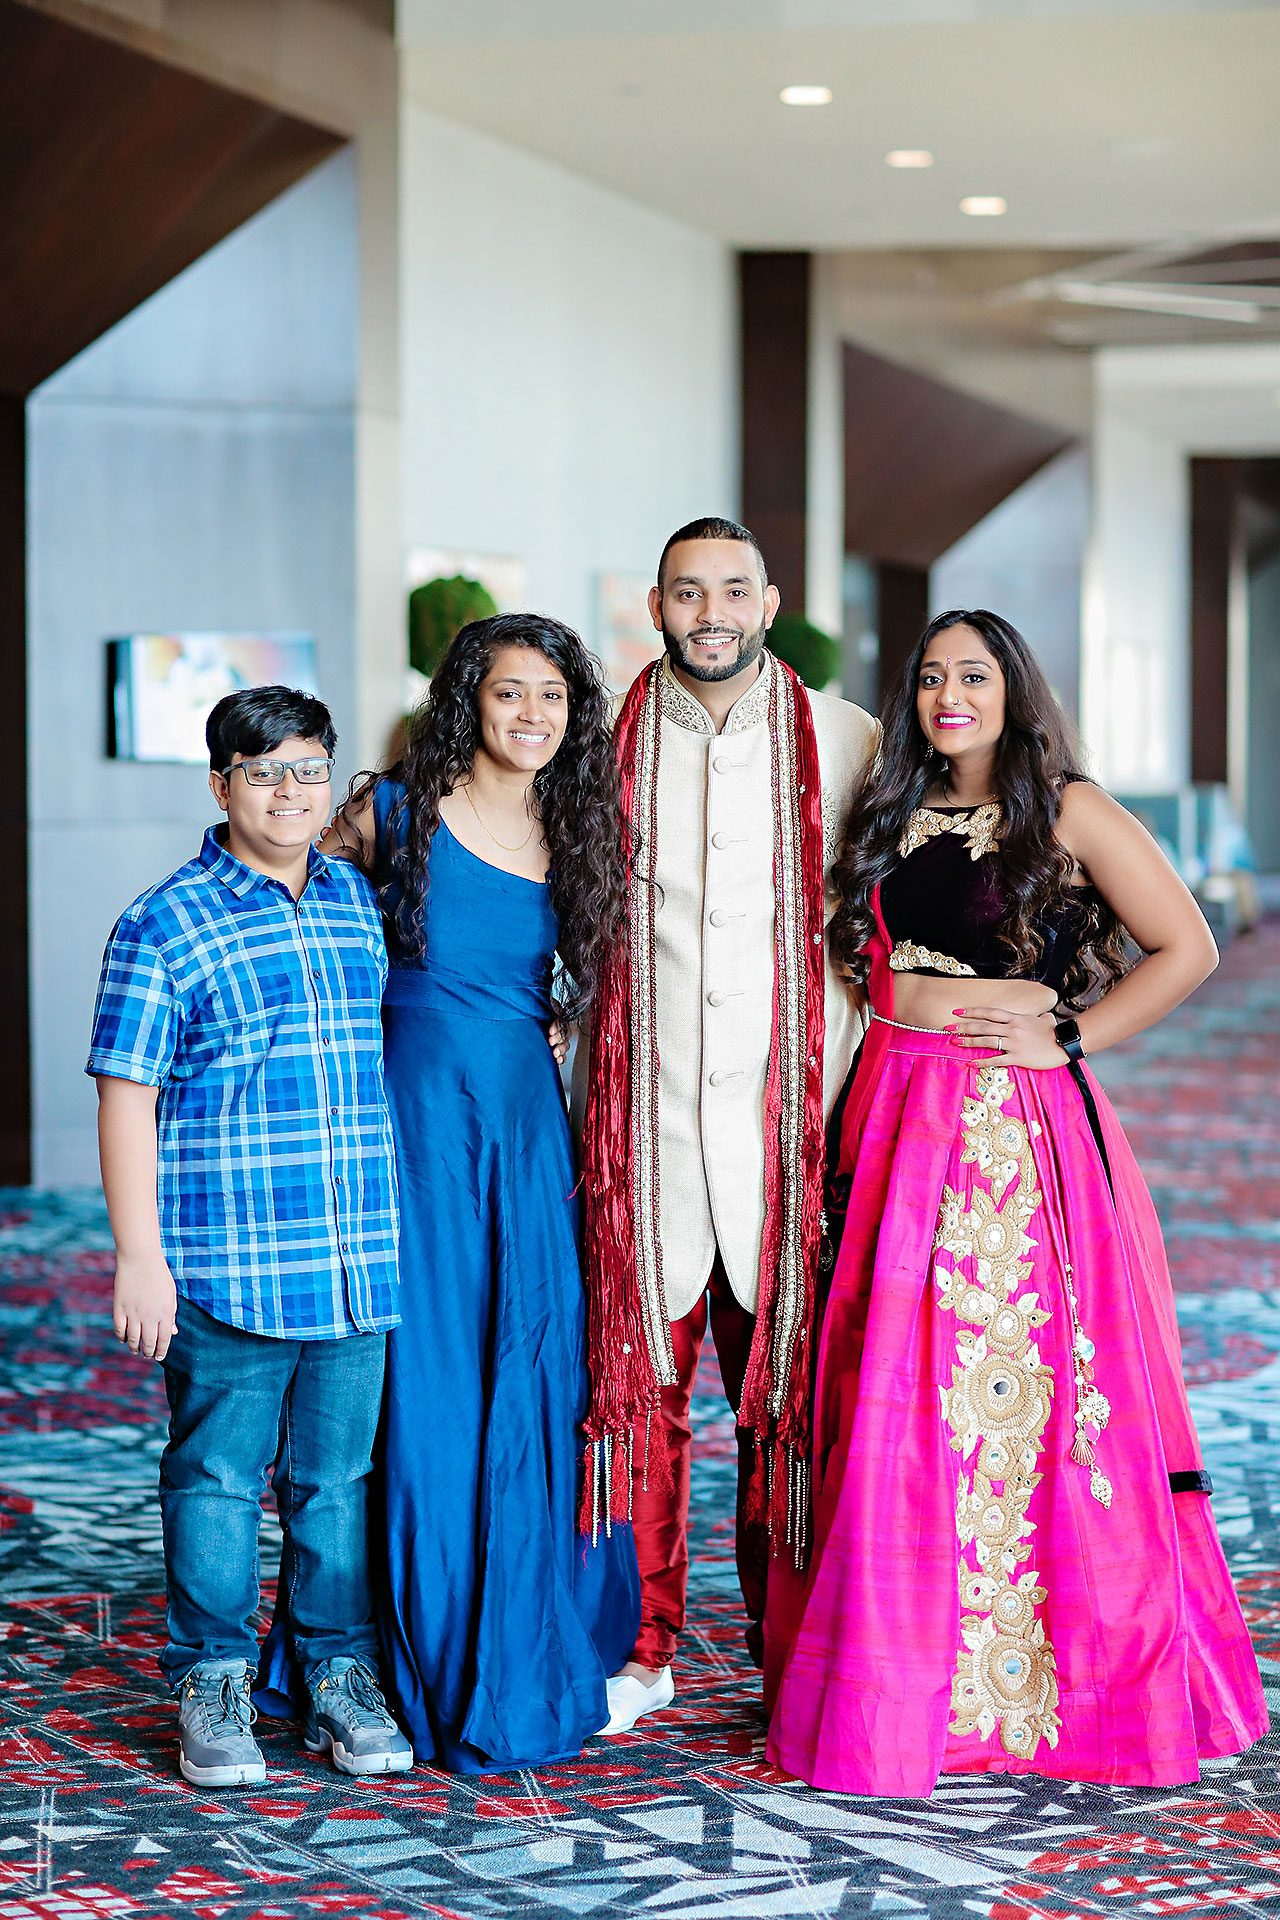 Neil Ganesh Pooja Embassy Suites Conference Center Noblesville 074